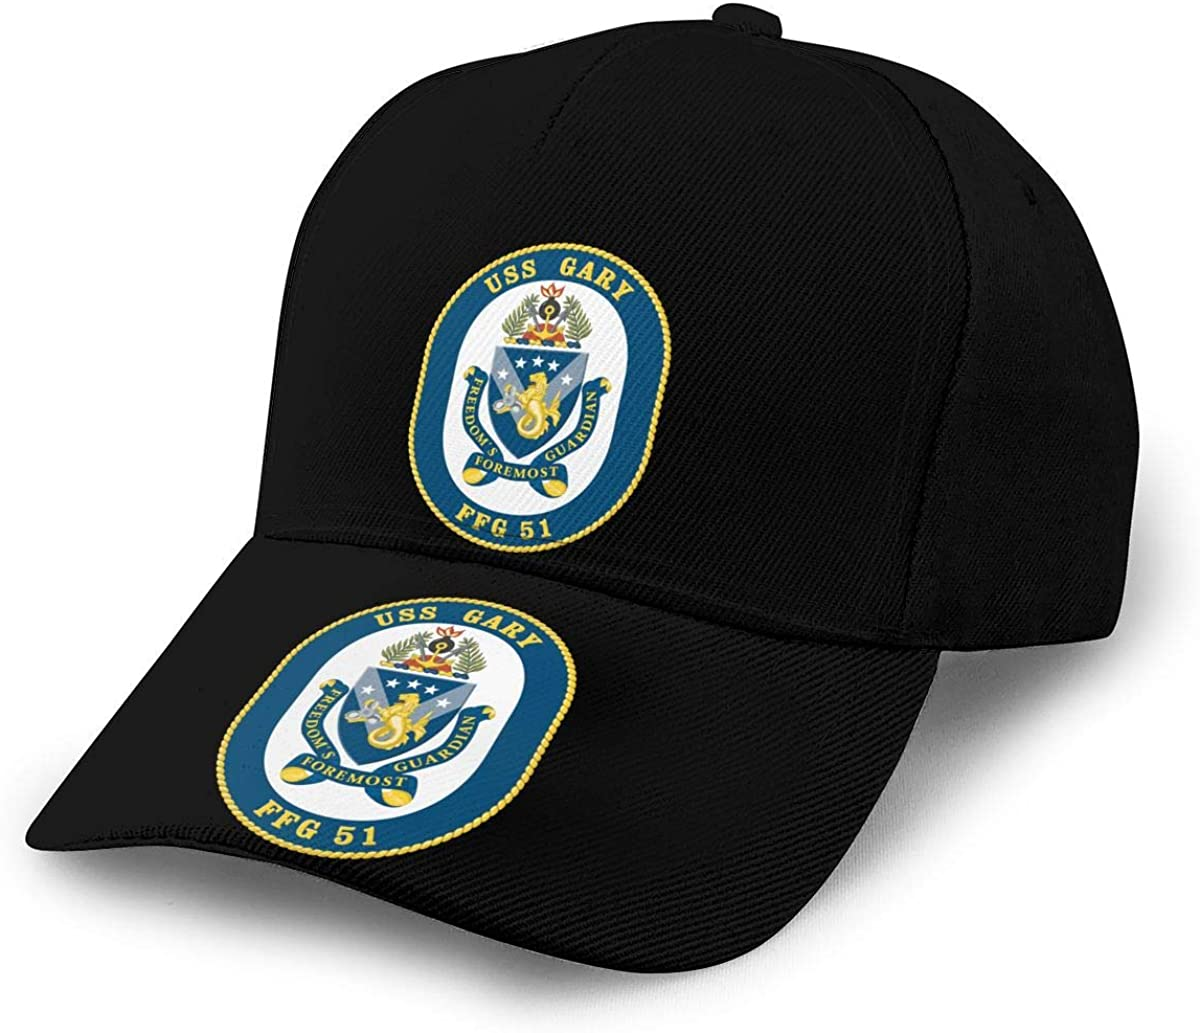 US Navy Ship USS Gary FFG-51 Unisex Adult Hats Classic Baseball Caps Peaked Cap